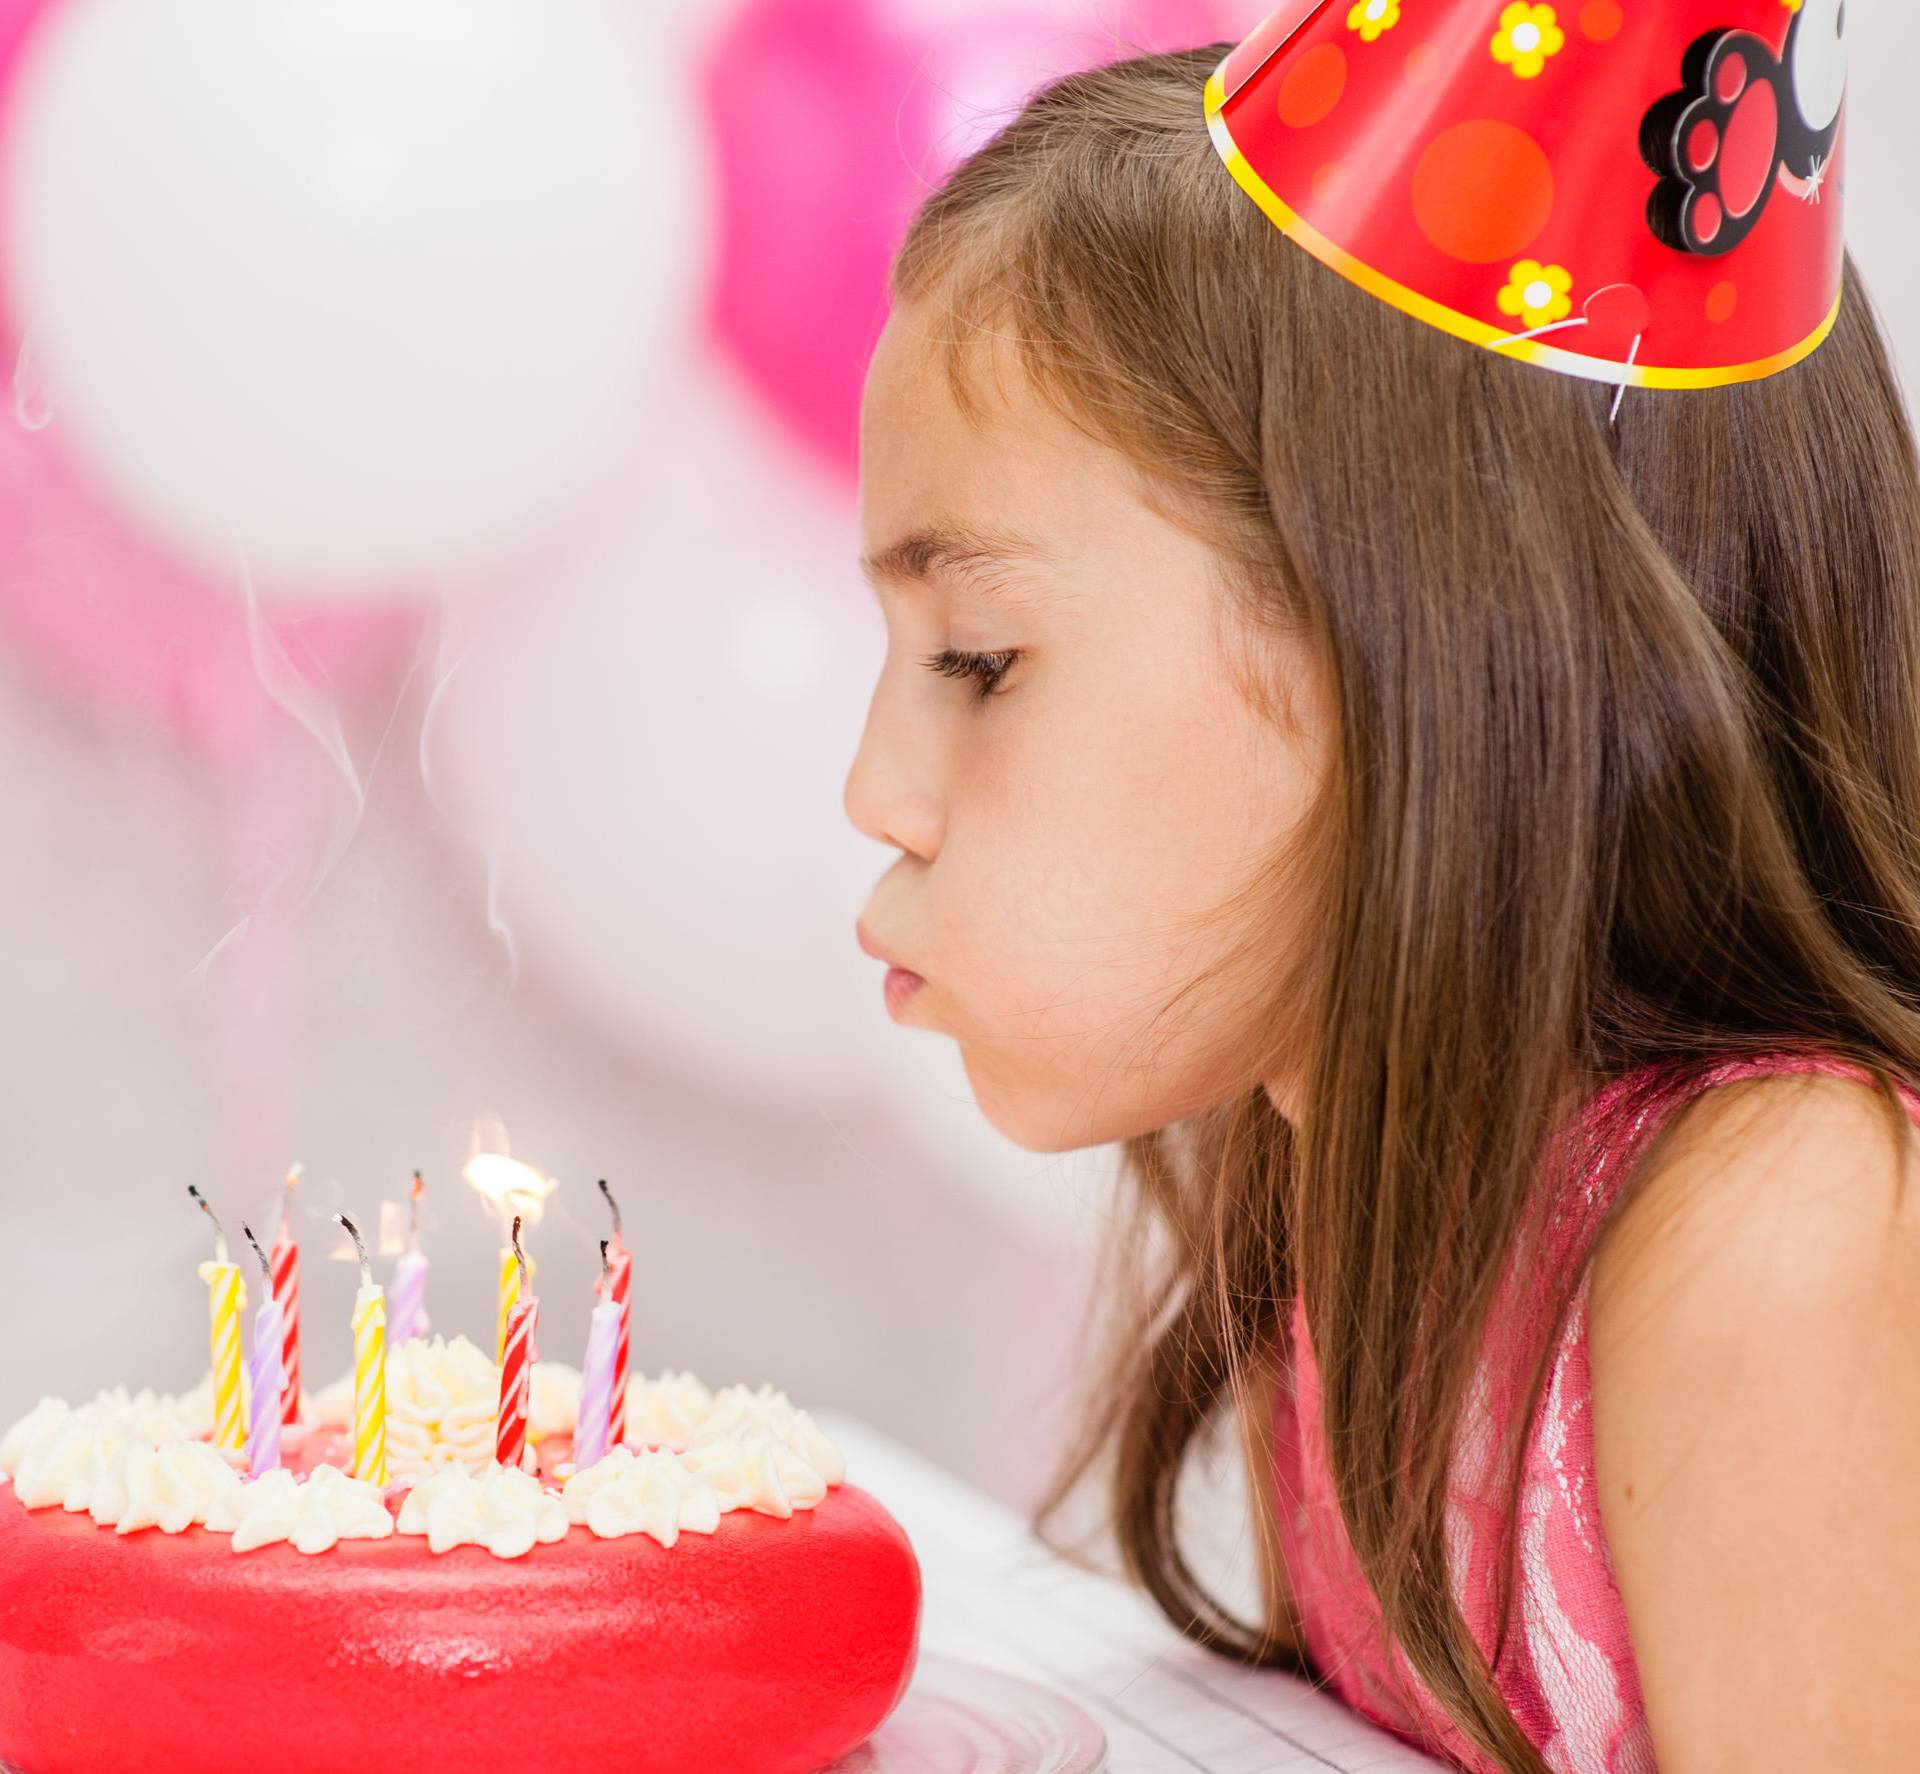 Cute girl celebrating his birthday and blowing candles on cake